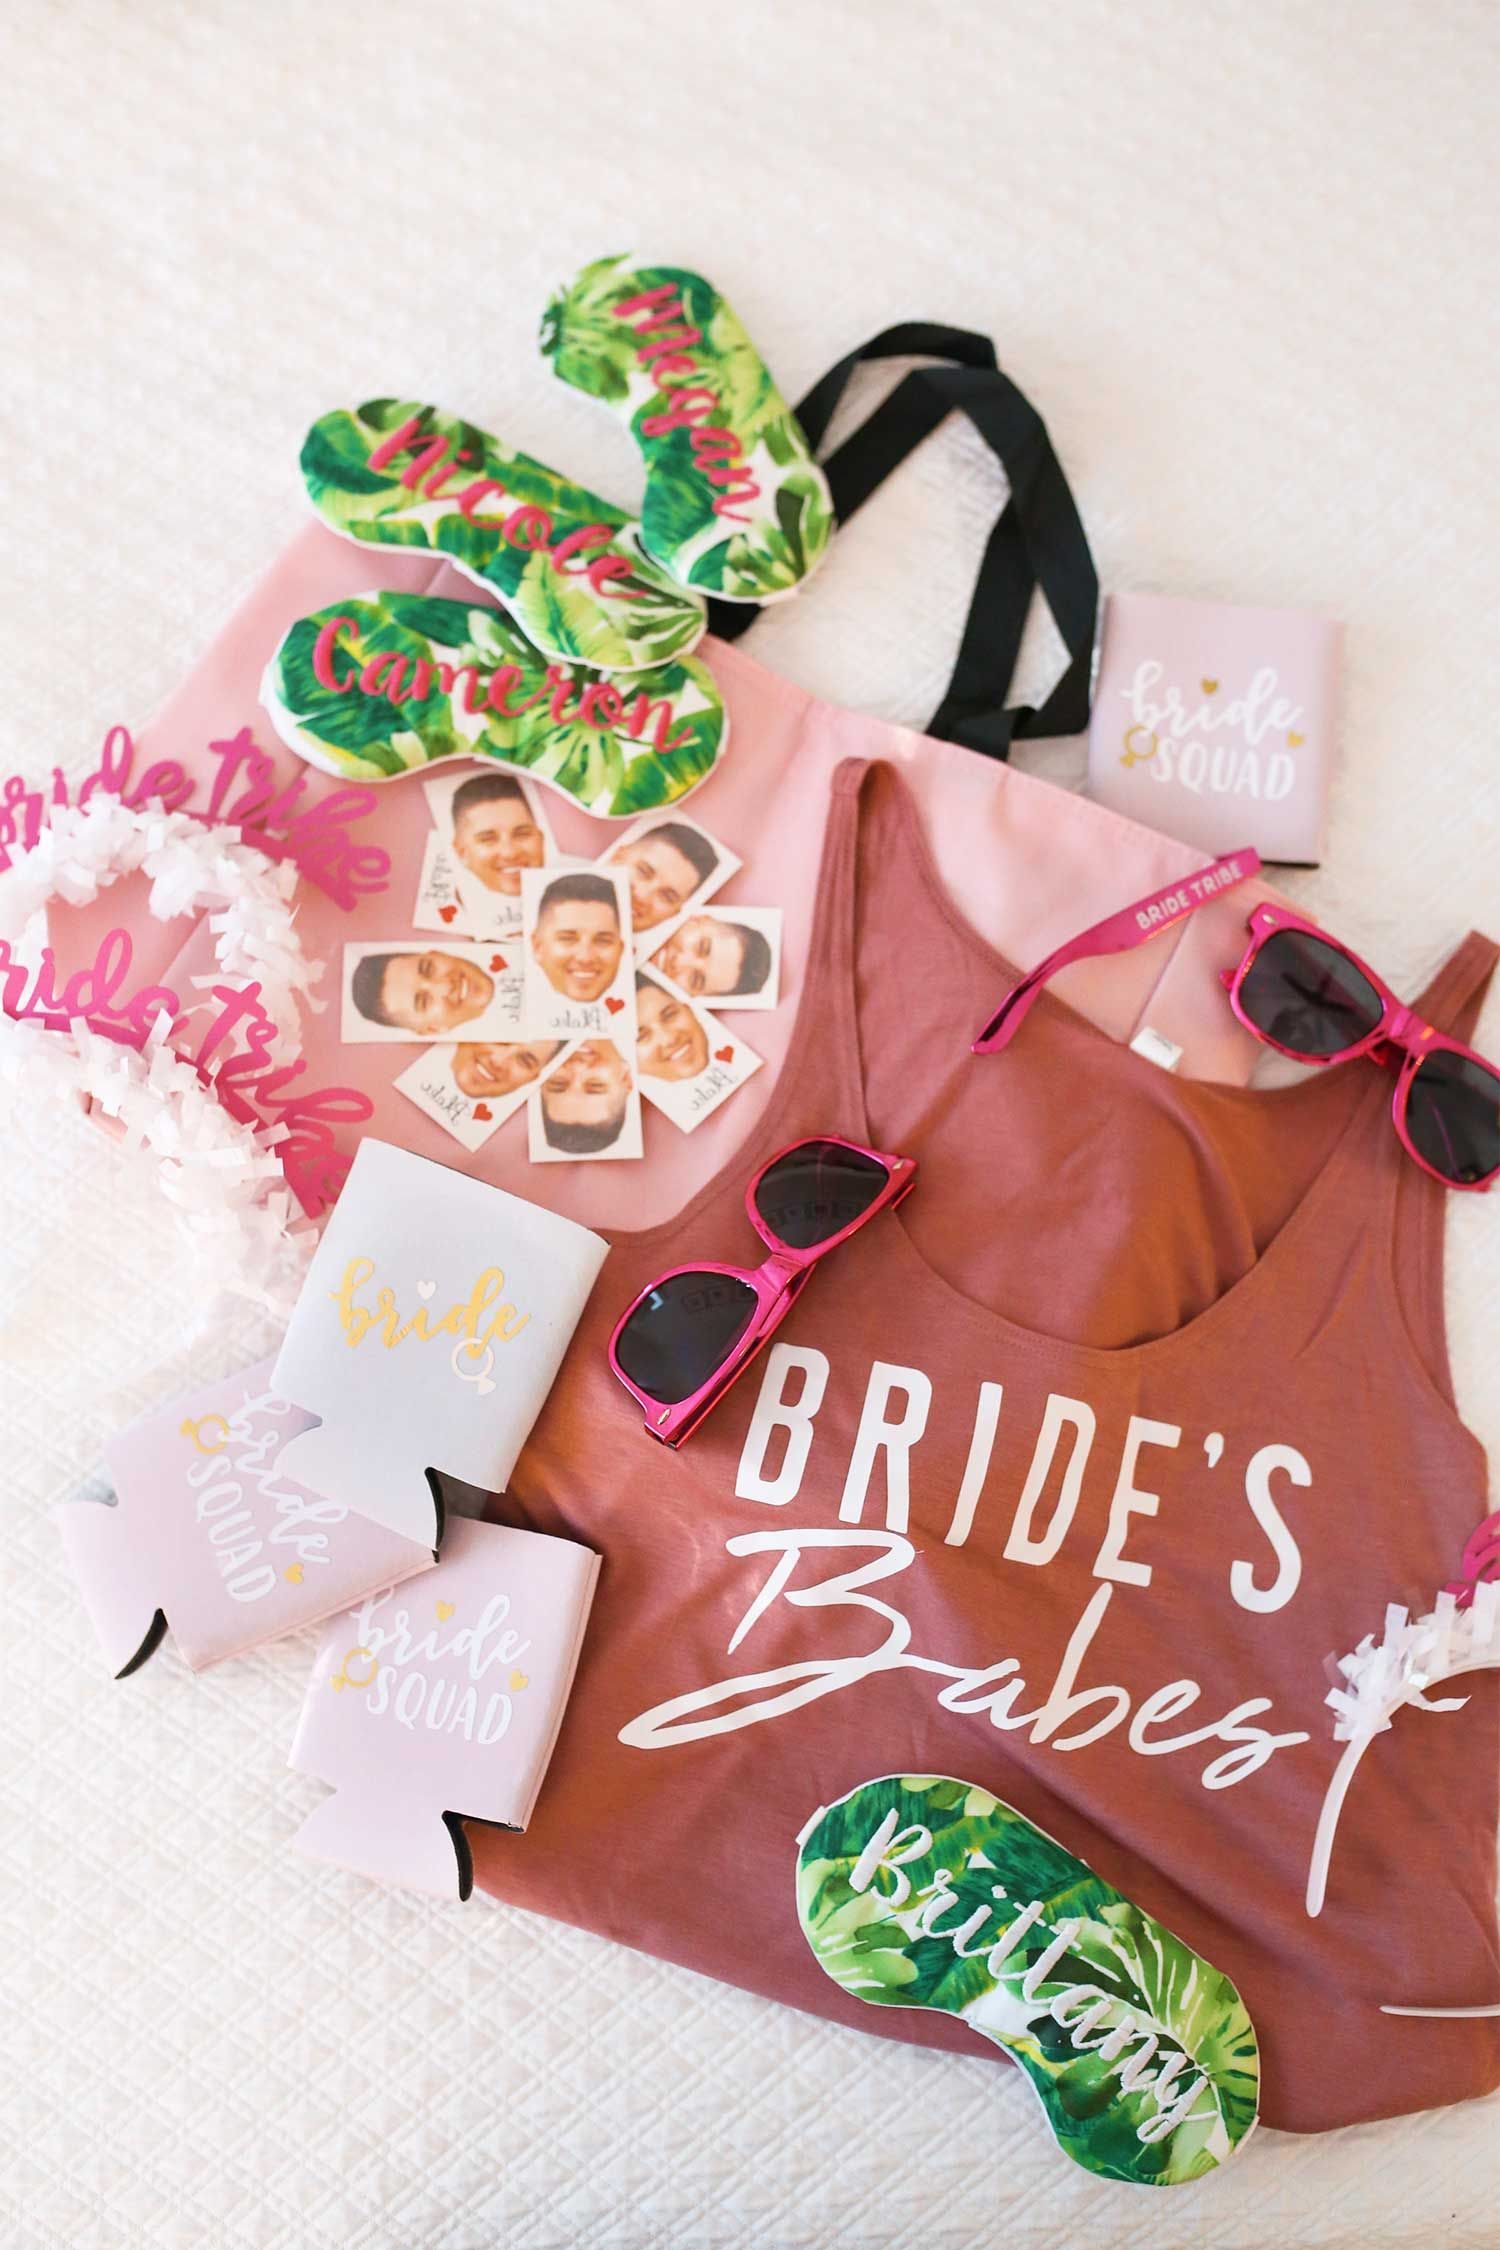 Classy bachelorette party favors gift ideas everyone